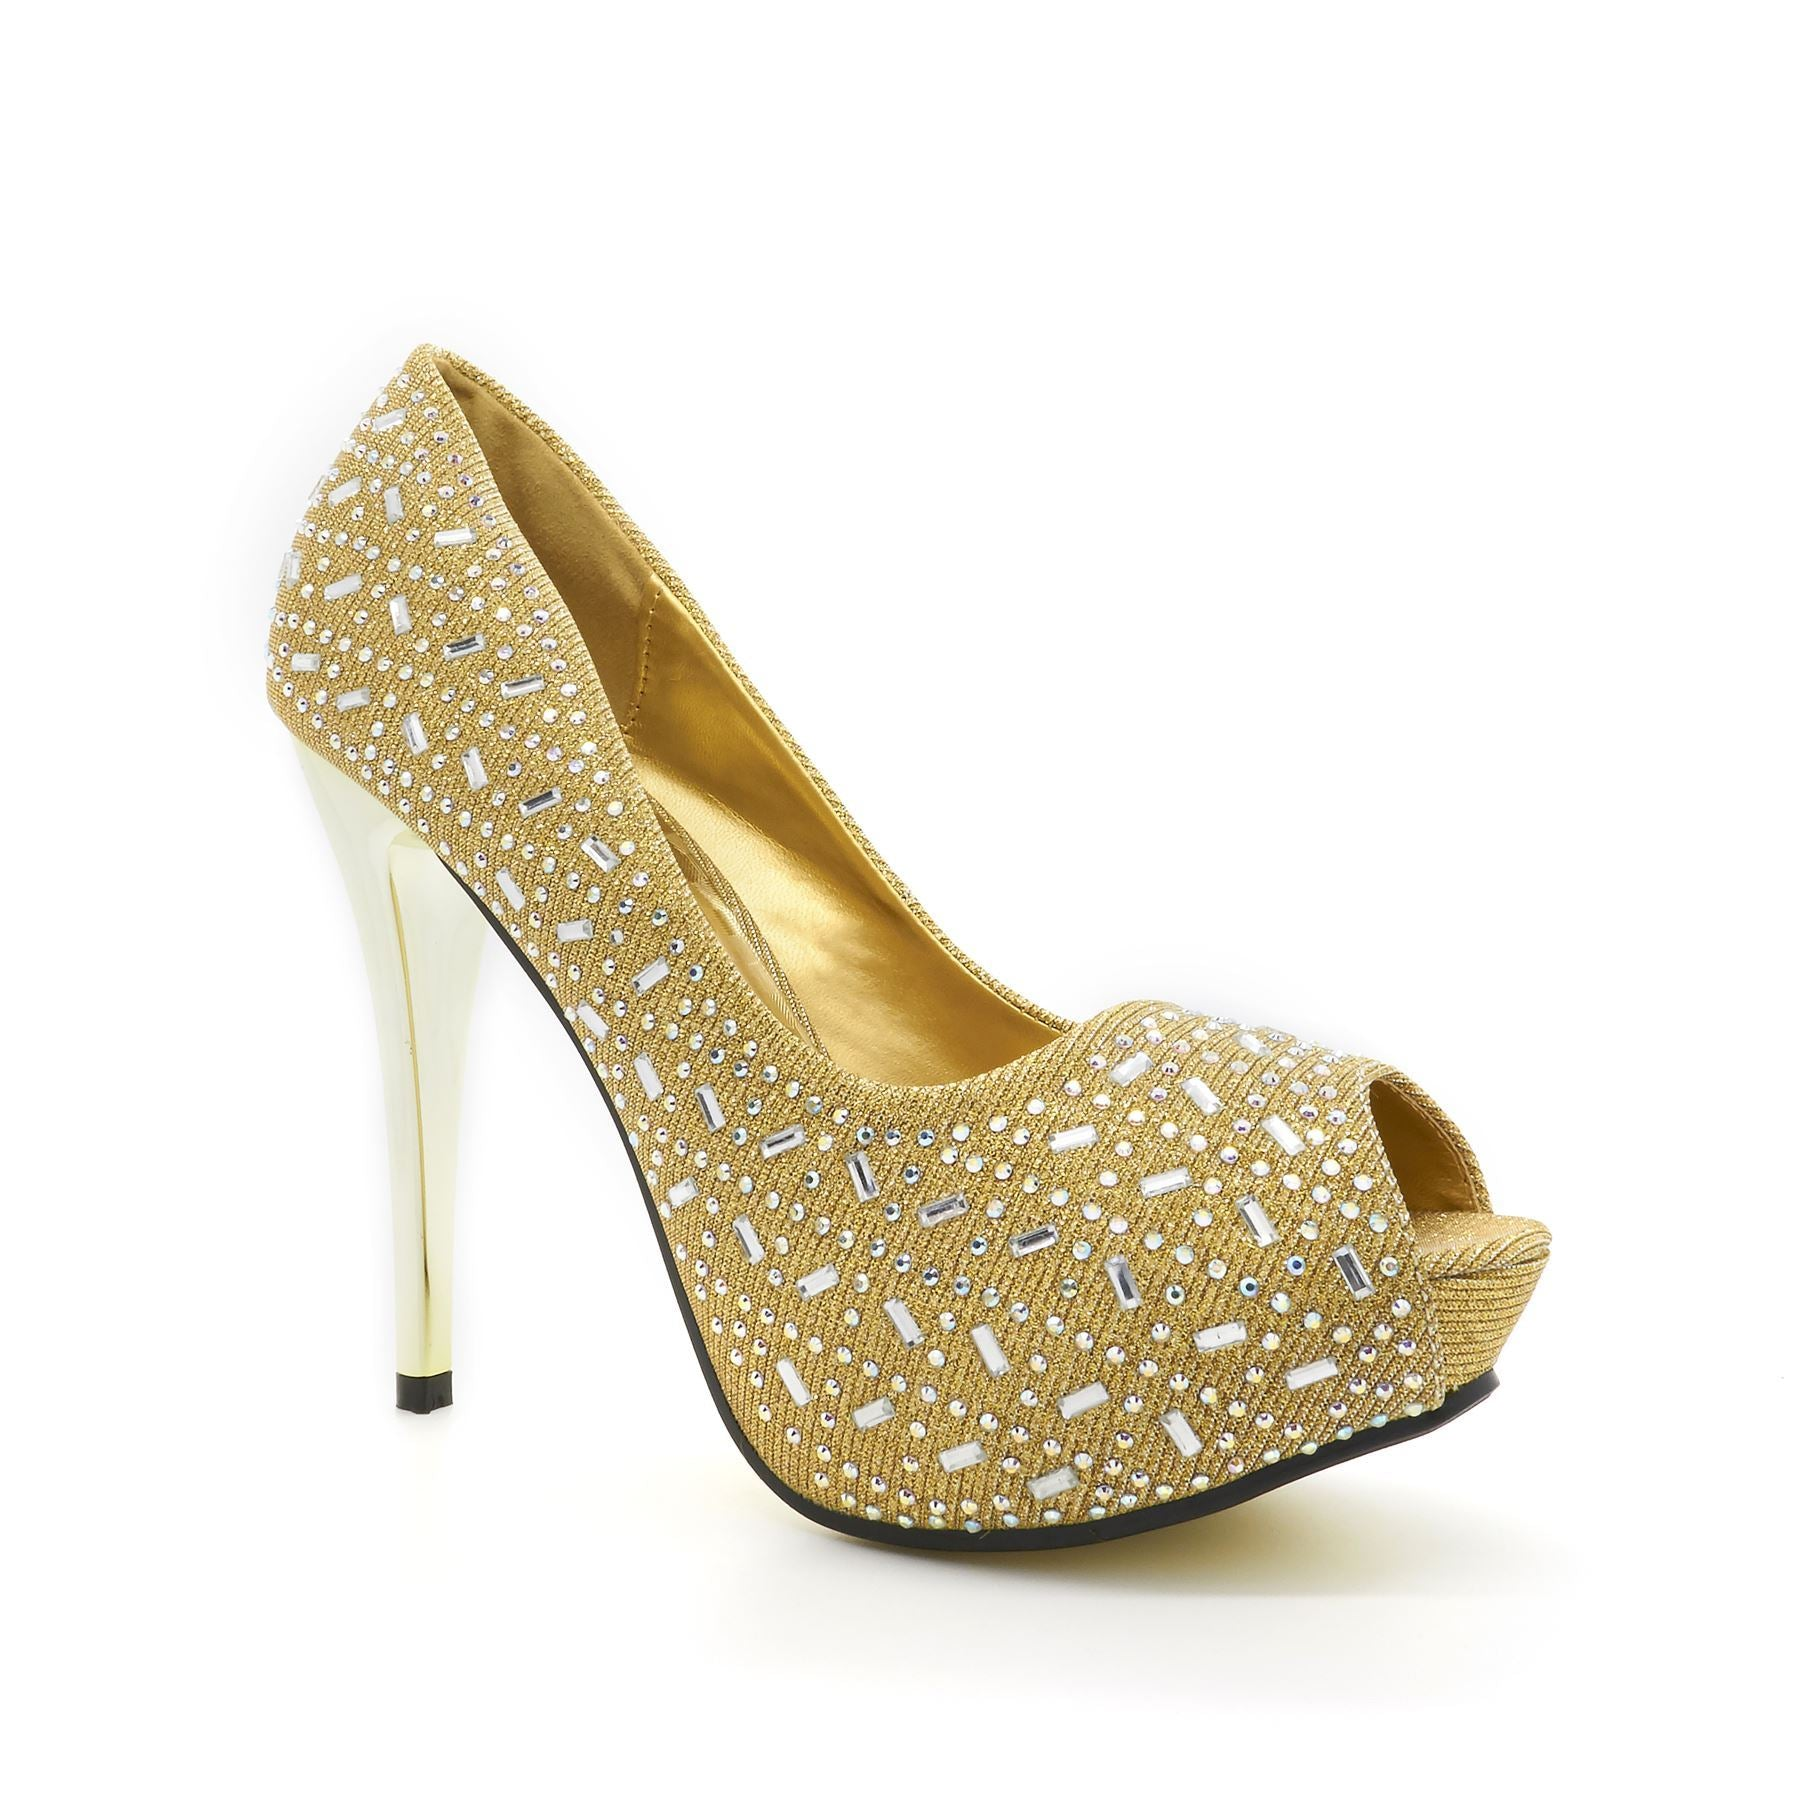 Gold Glitter Peep Toe High Heel